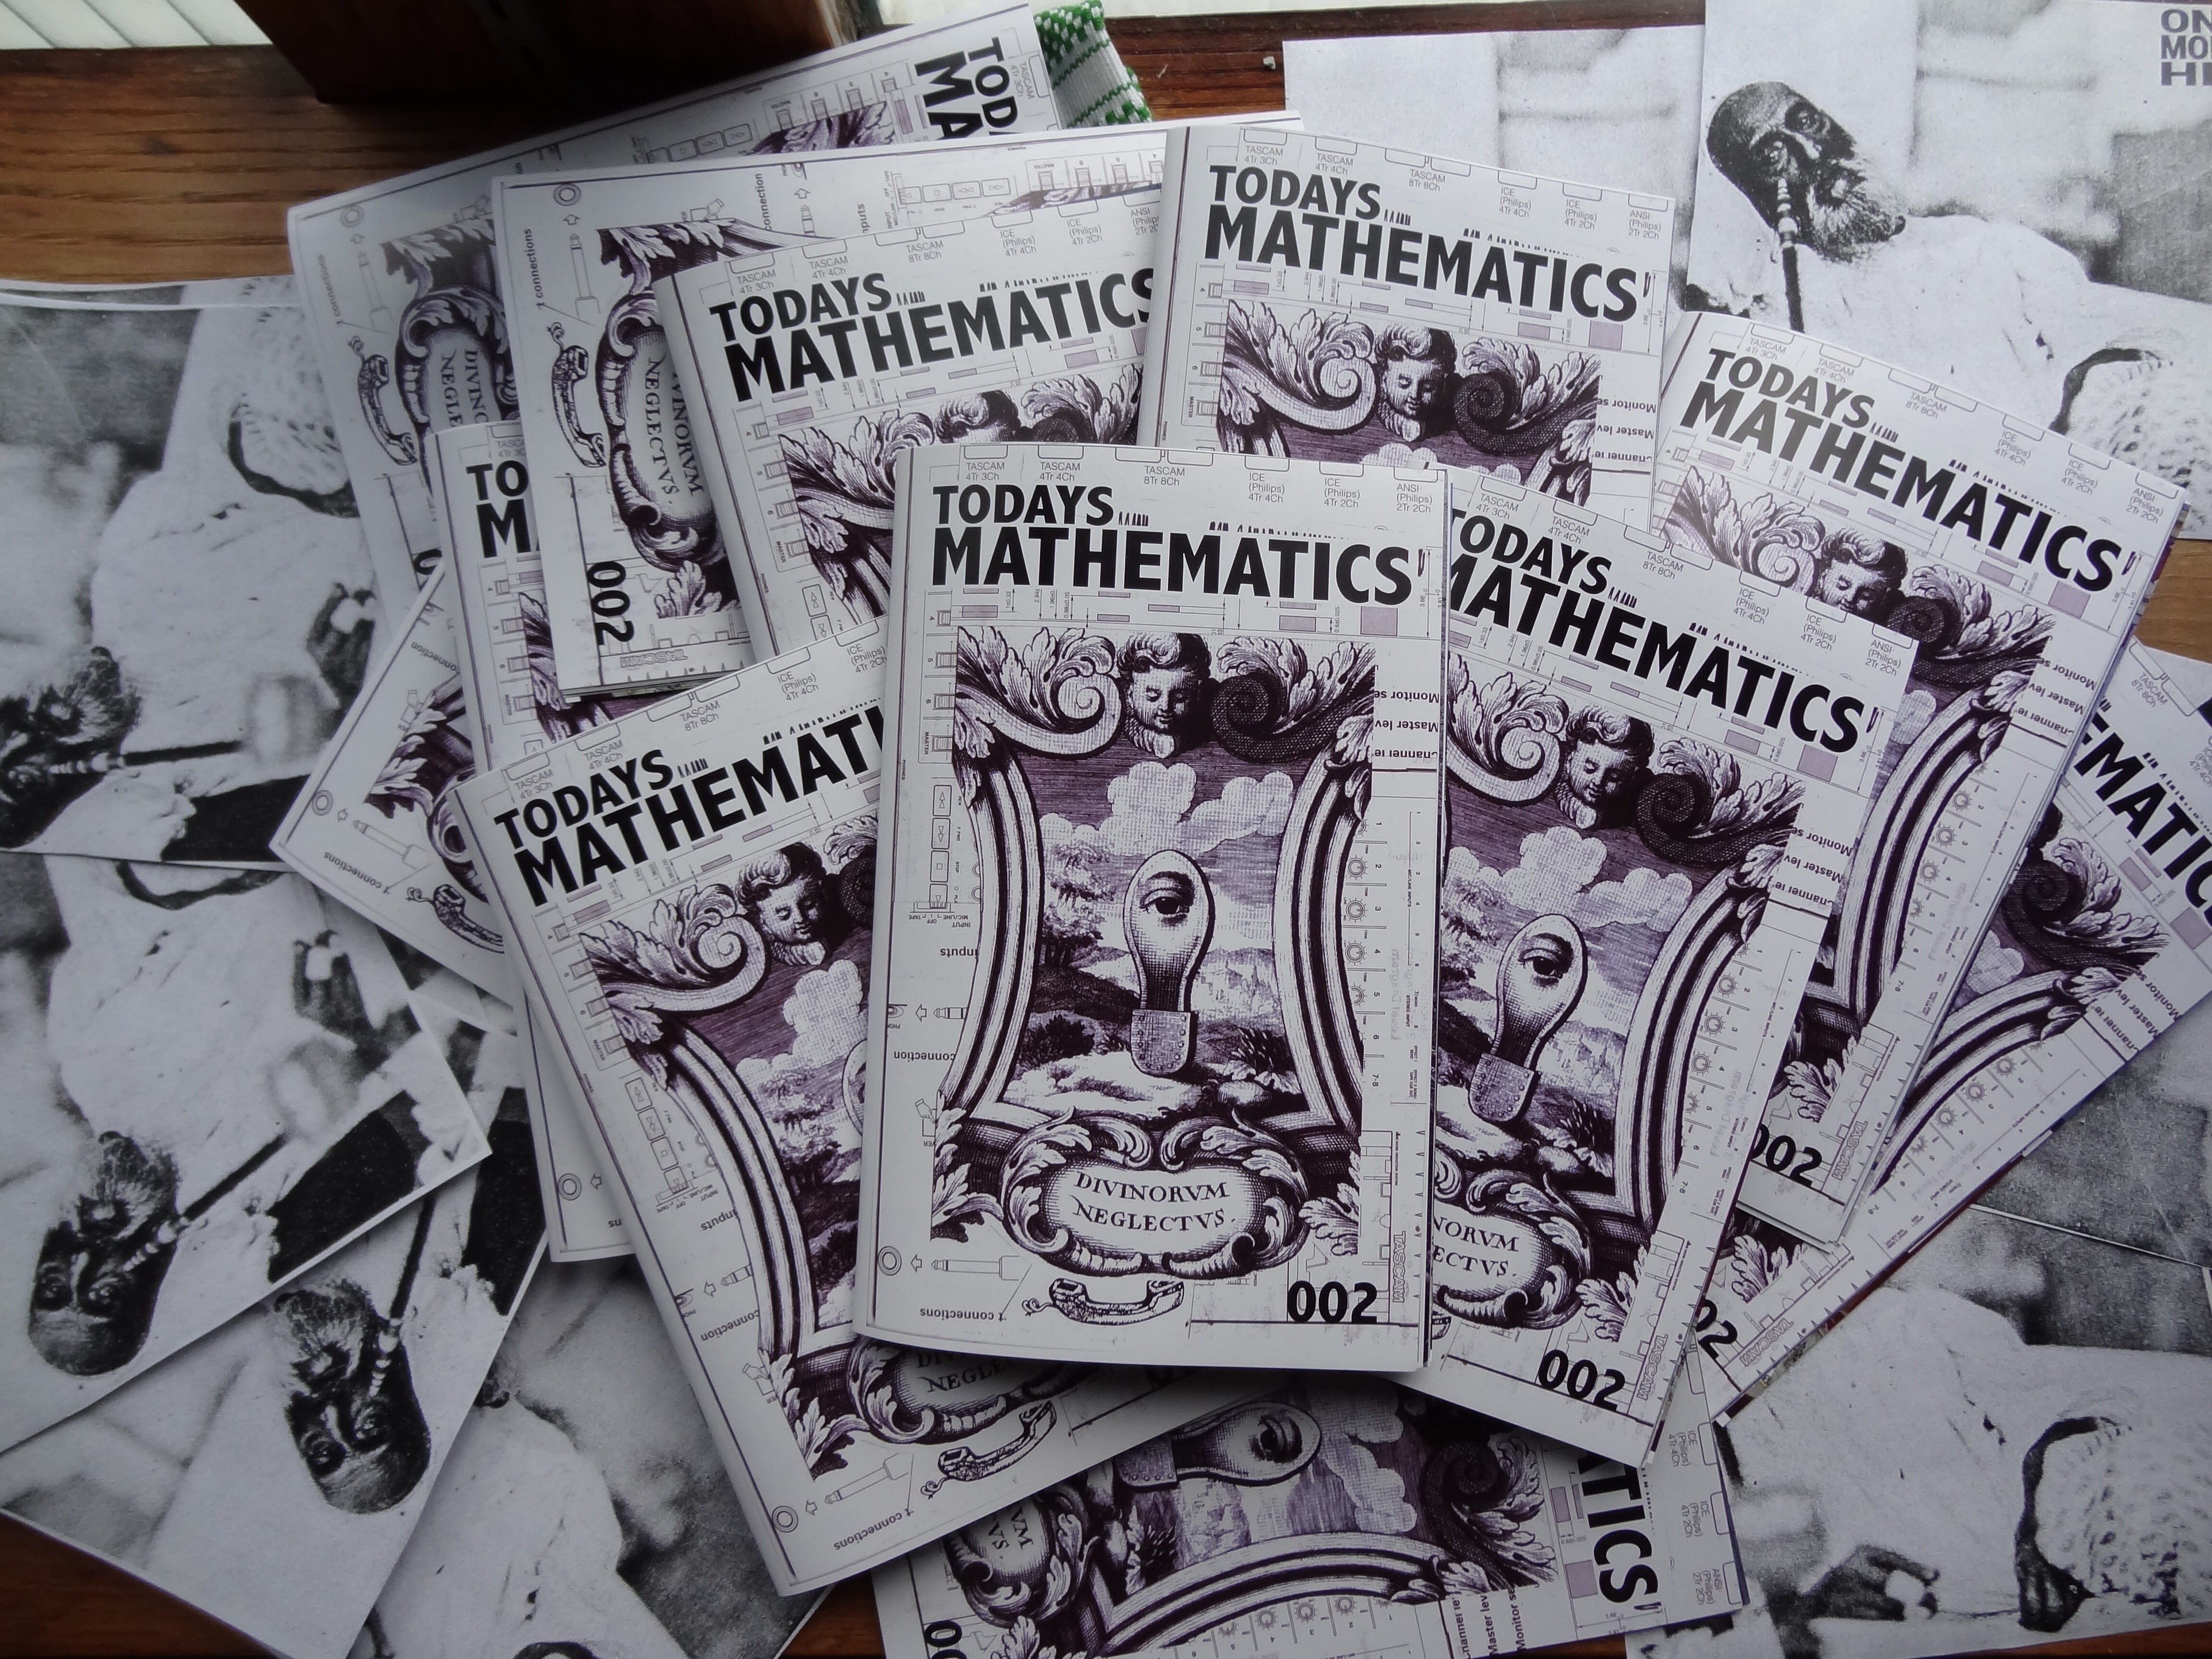 Todays Mathematics Zine